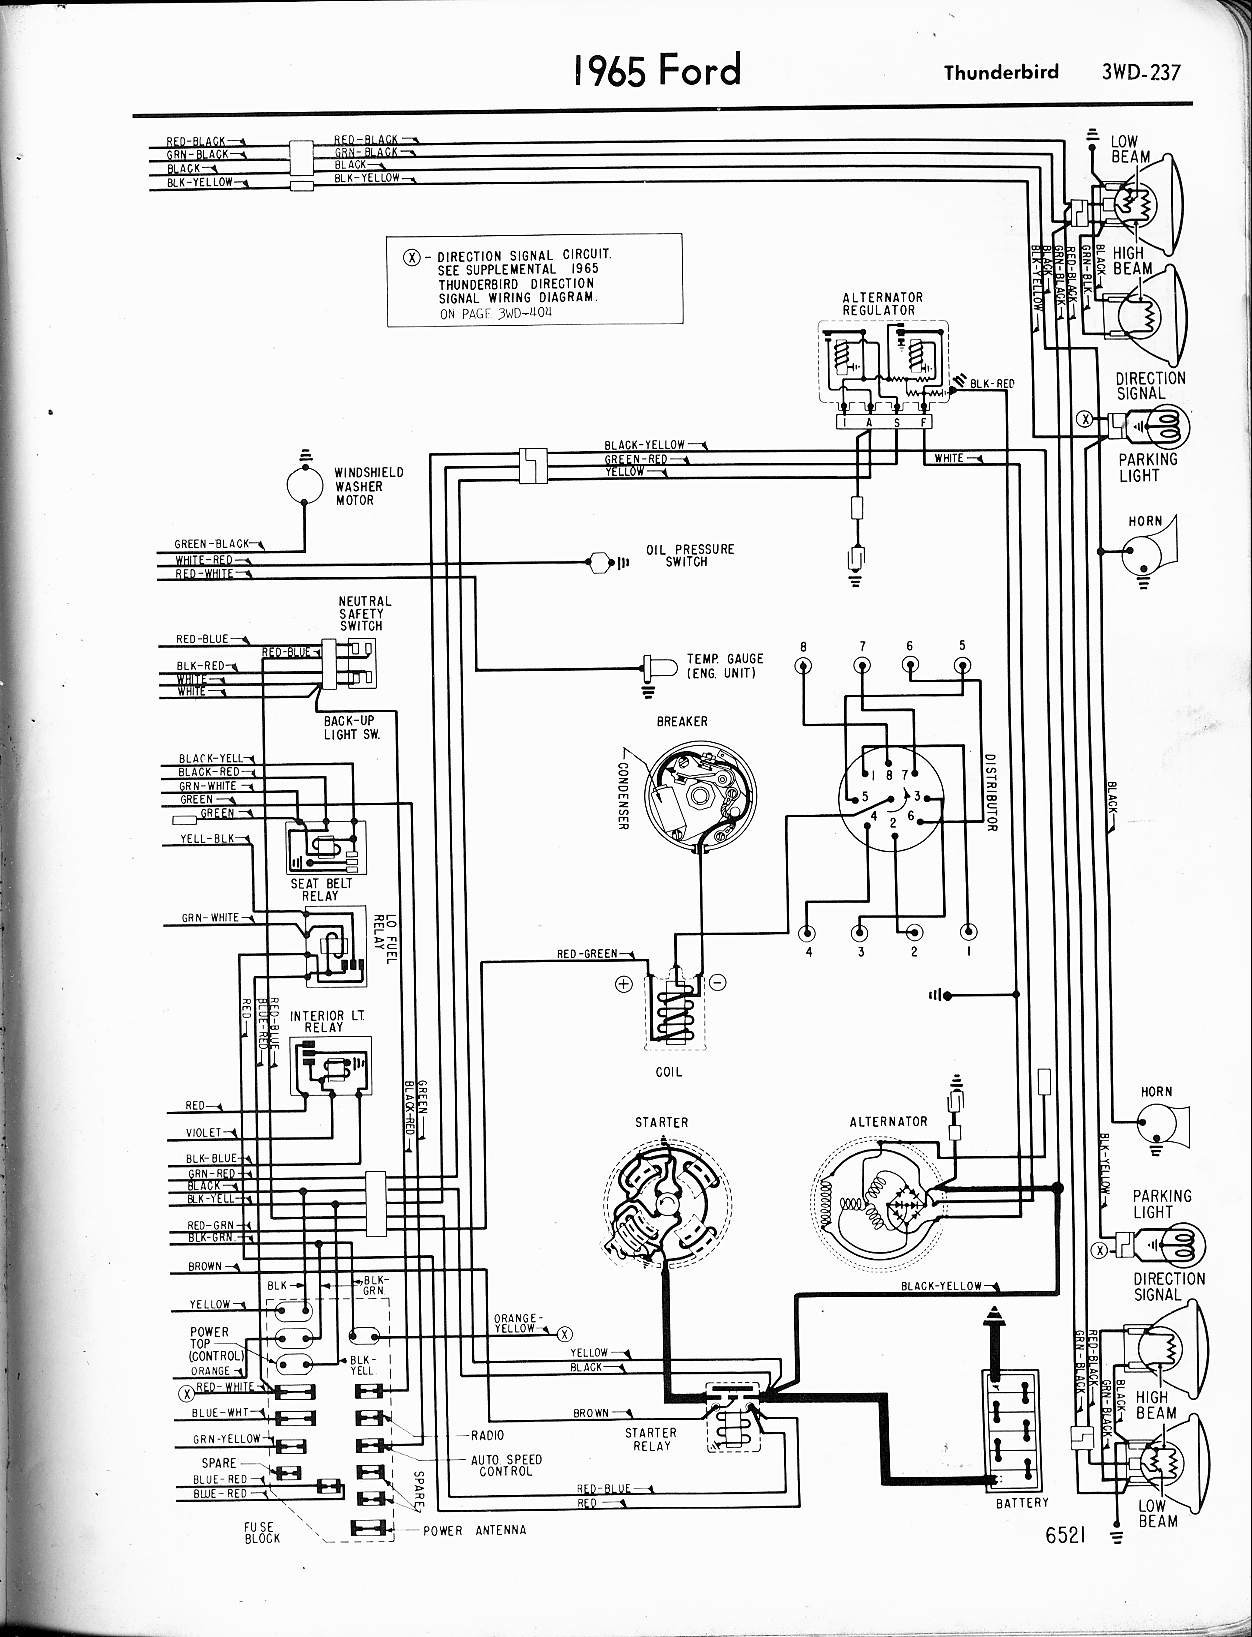 2010 Ford Focus Engine Diagram Wiring Library Fusion Mondeo Econoline Also 1966 Of